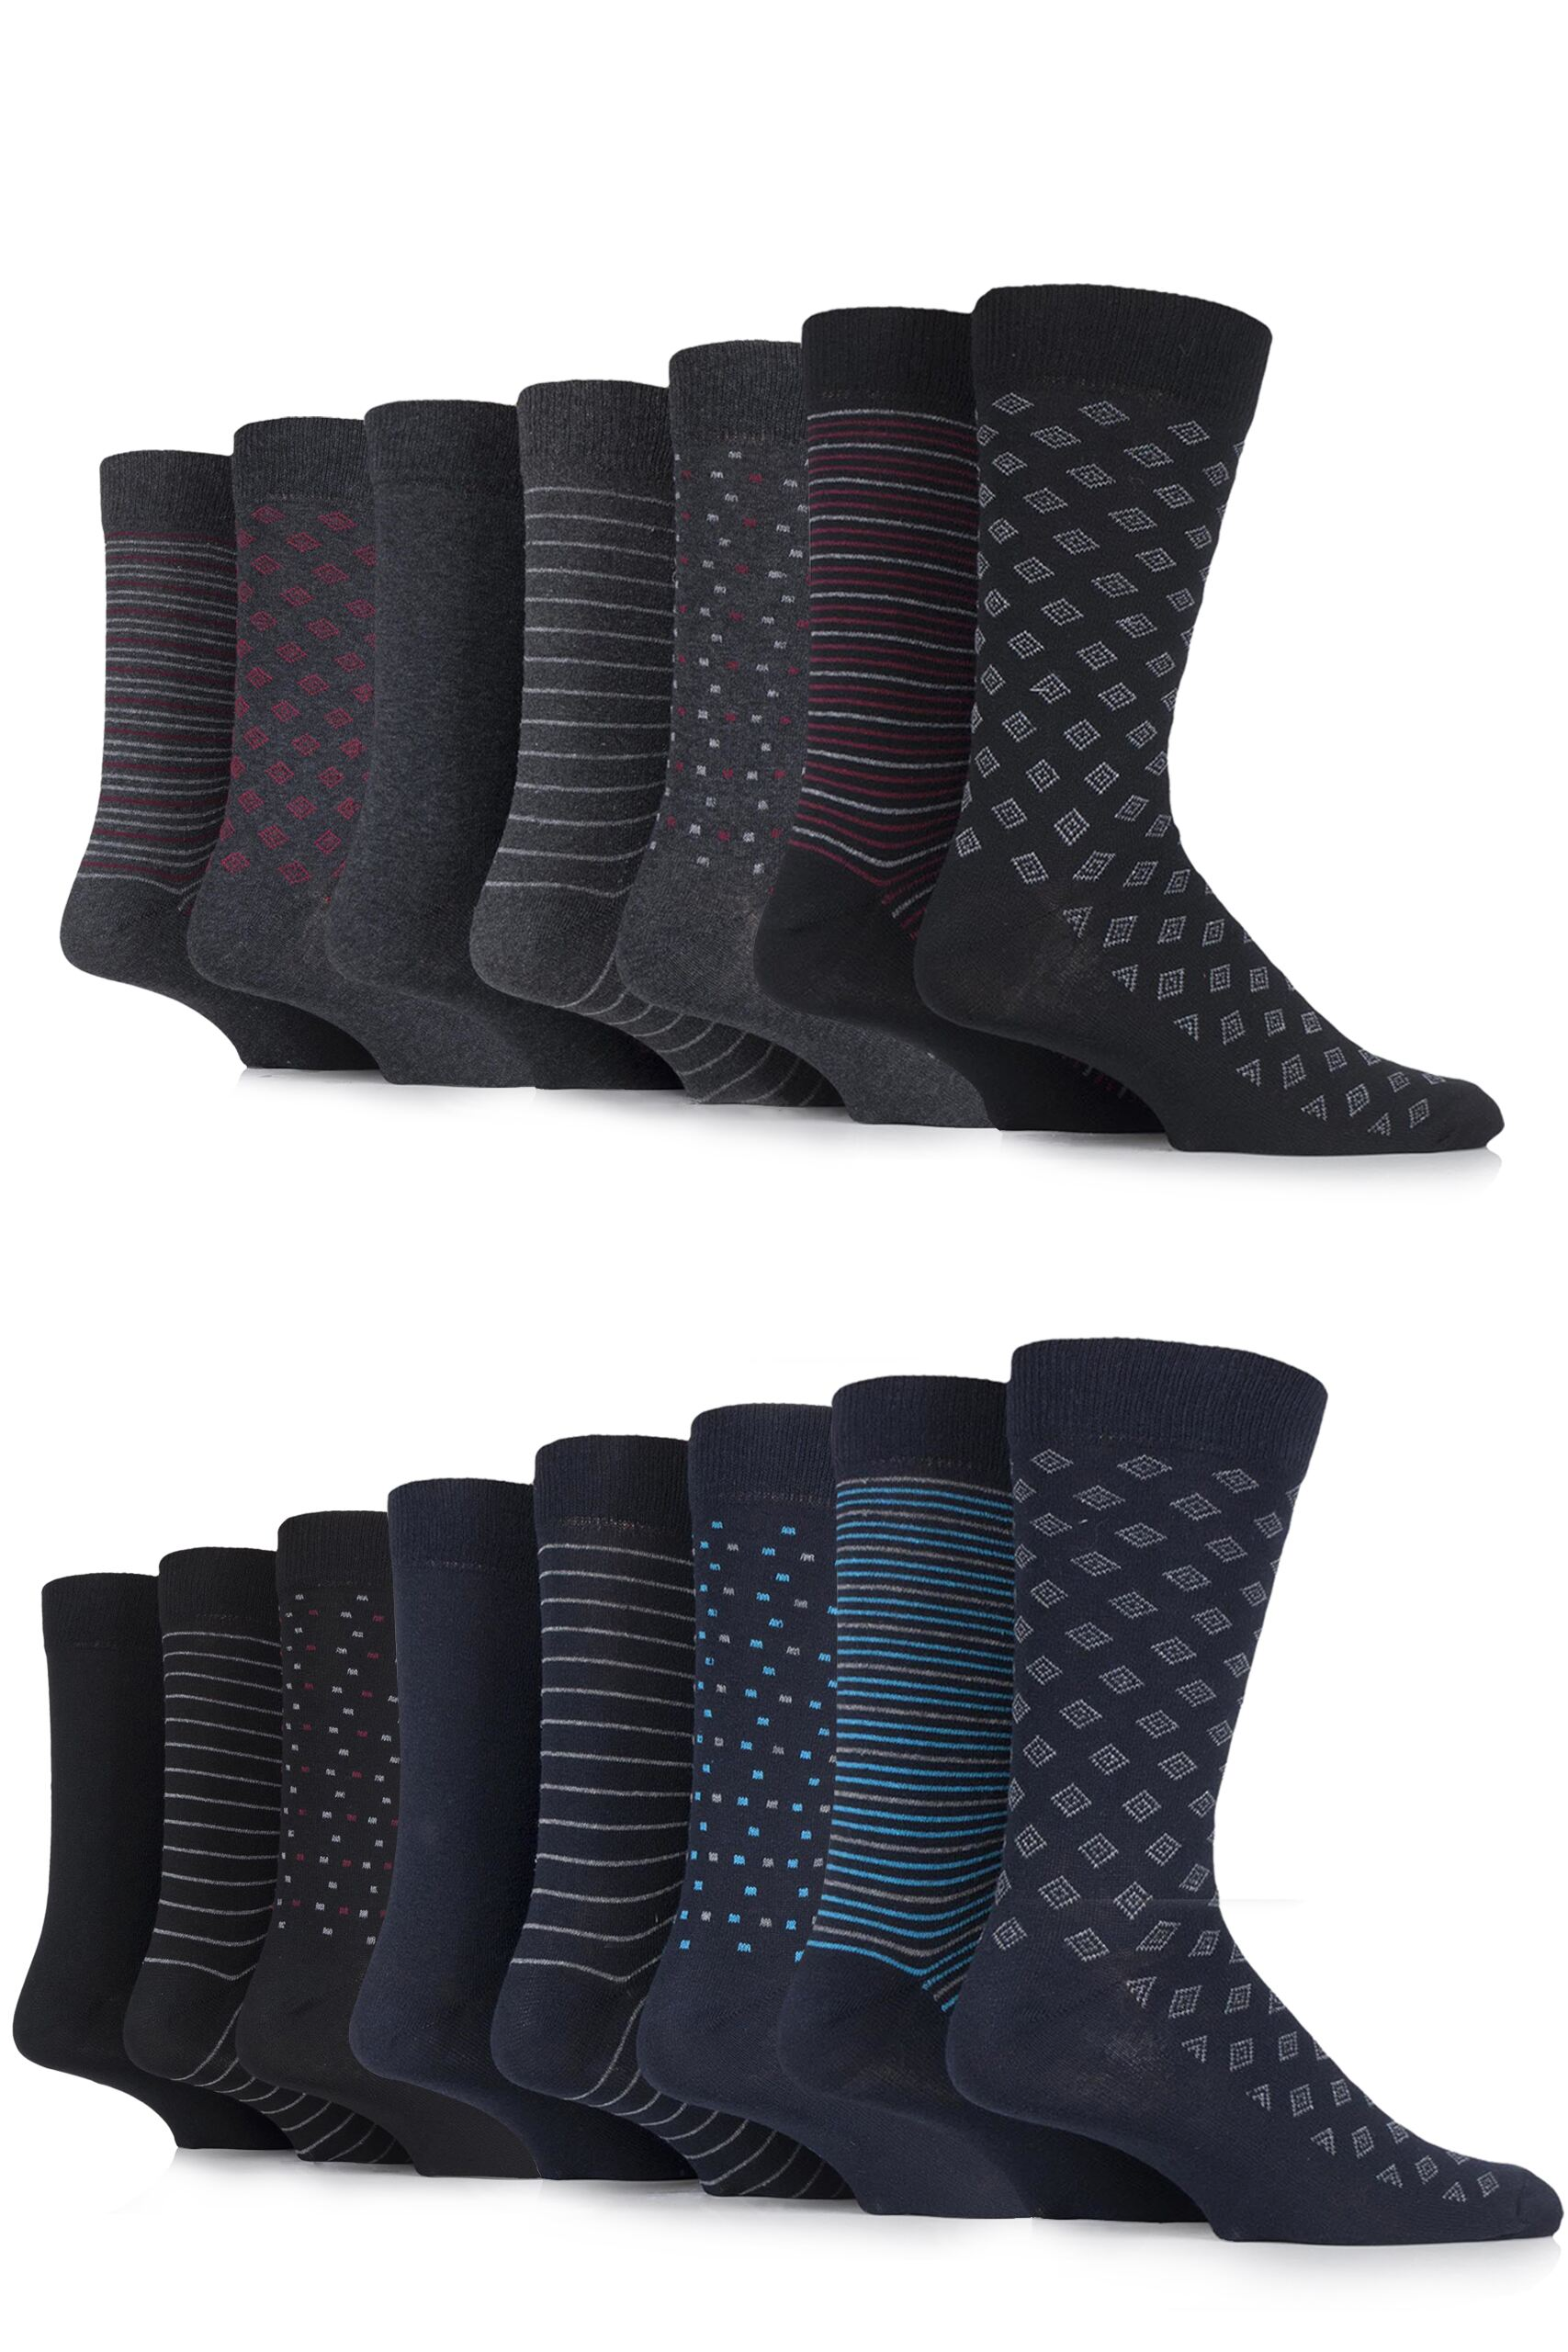 Mens patterned socks